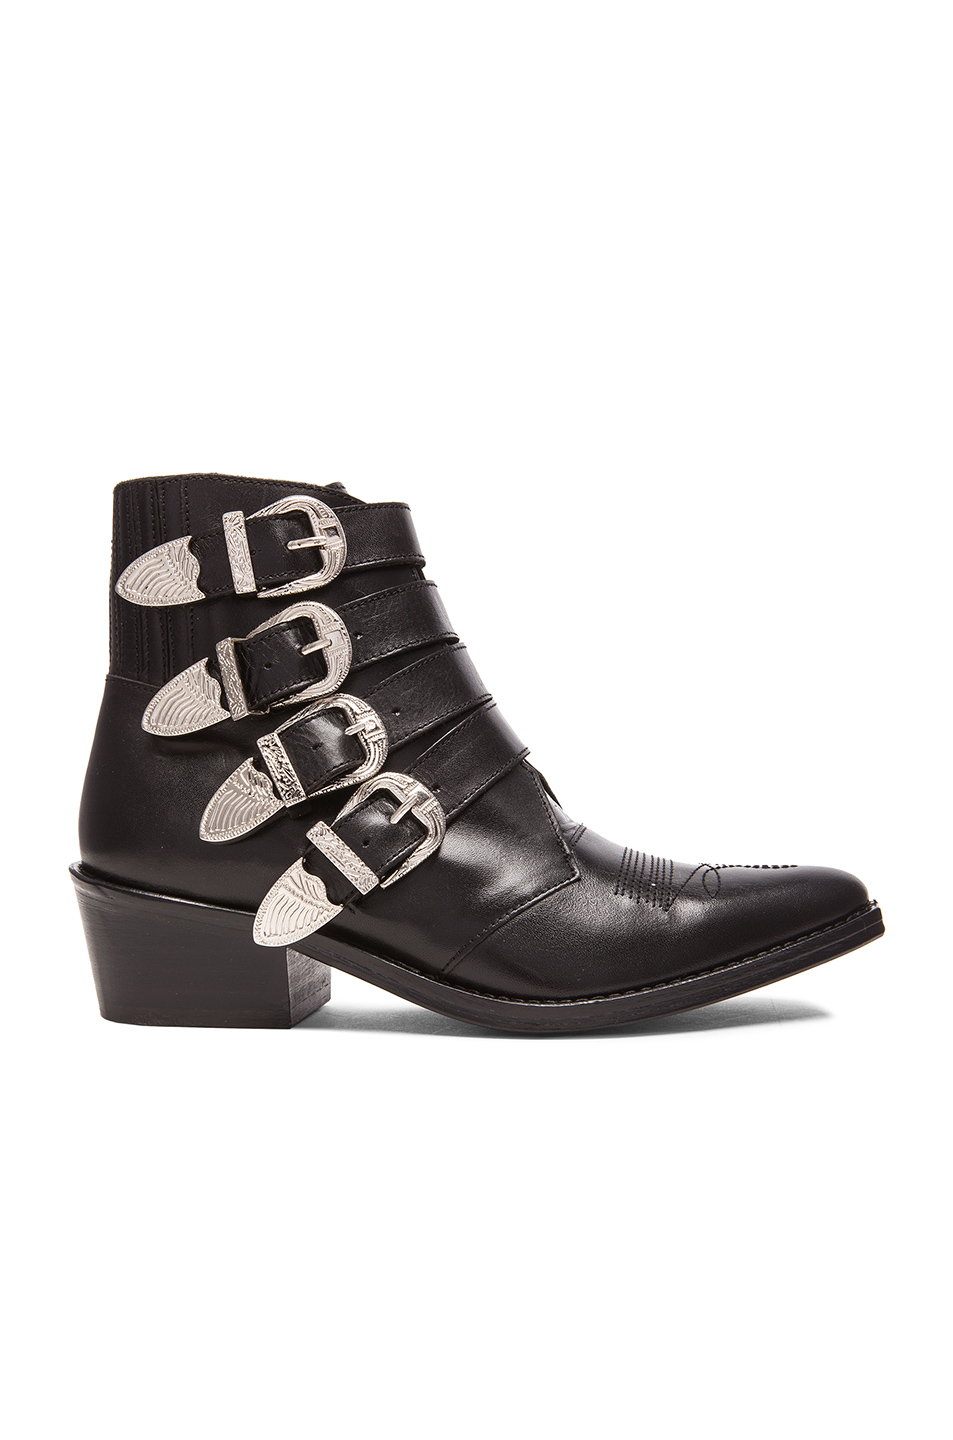 Toga pulla Leather Buckled Booties in Black   Lyst